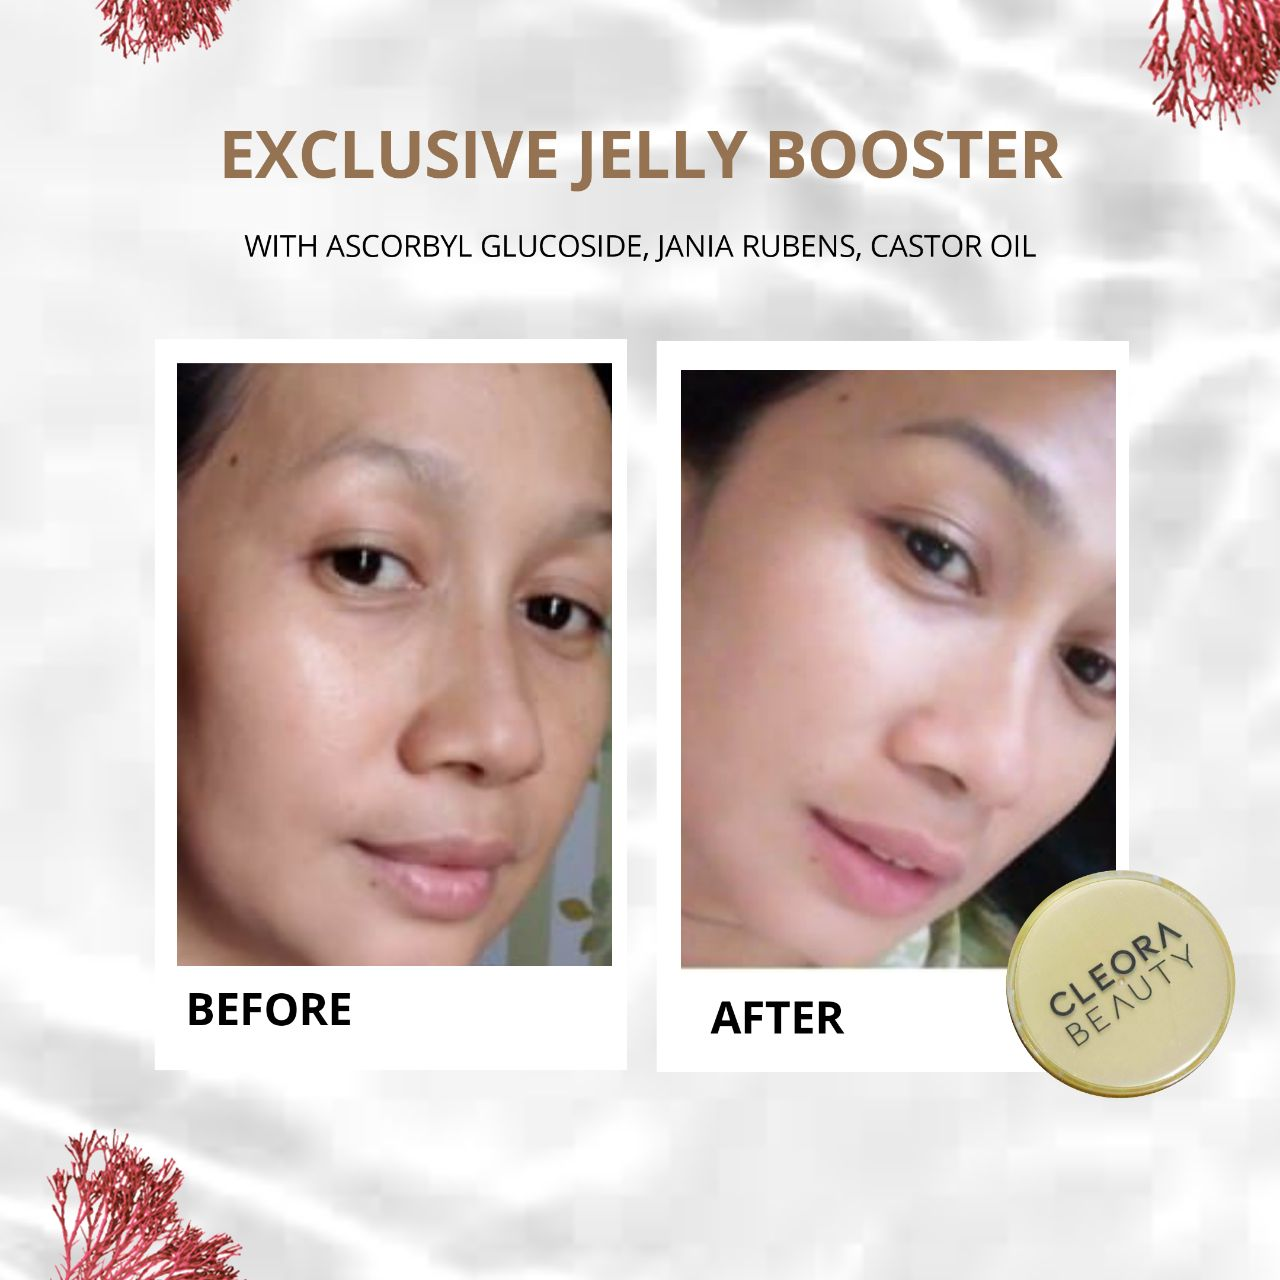 Exclusive Jelly Booster